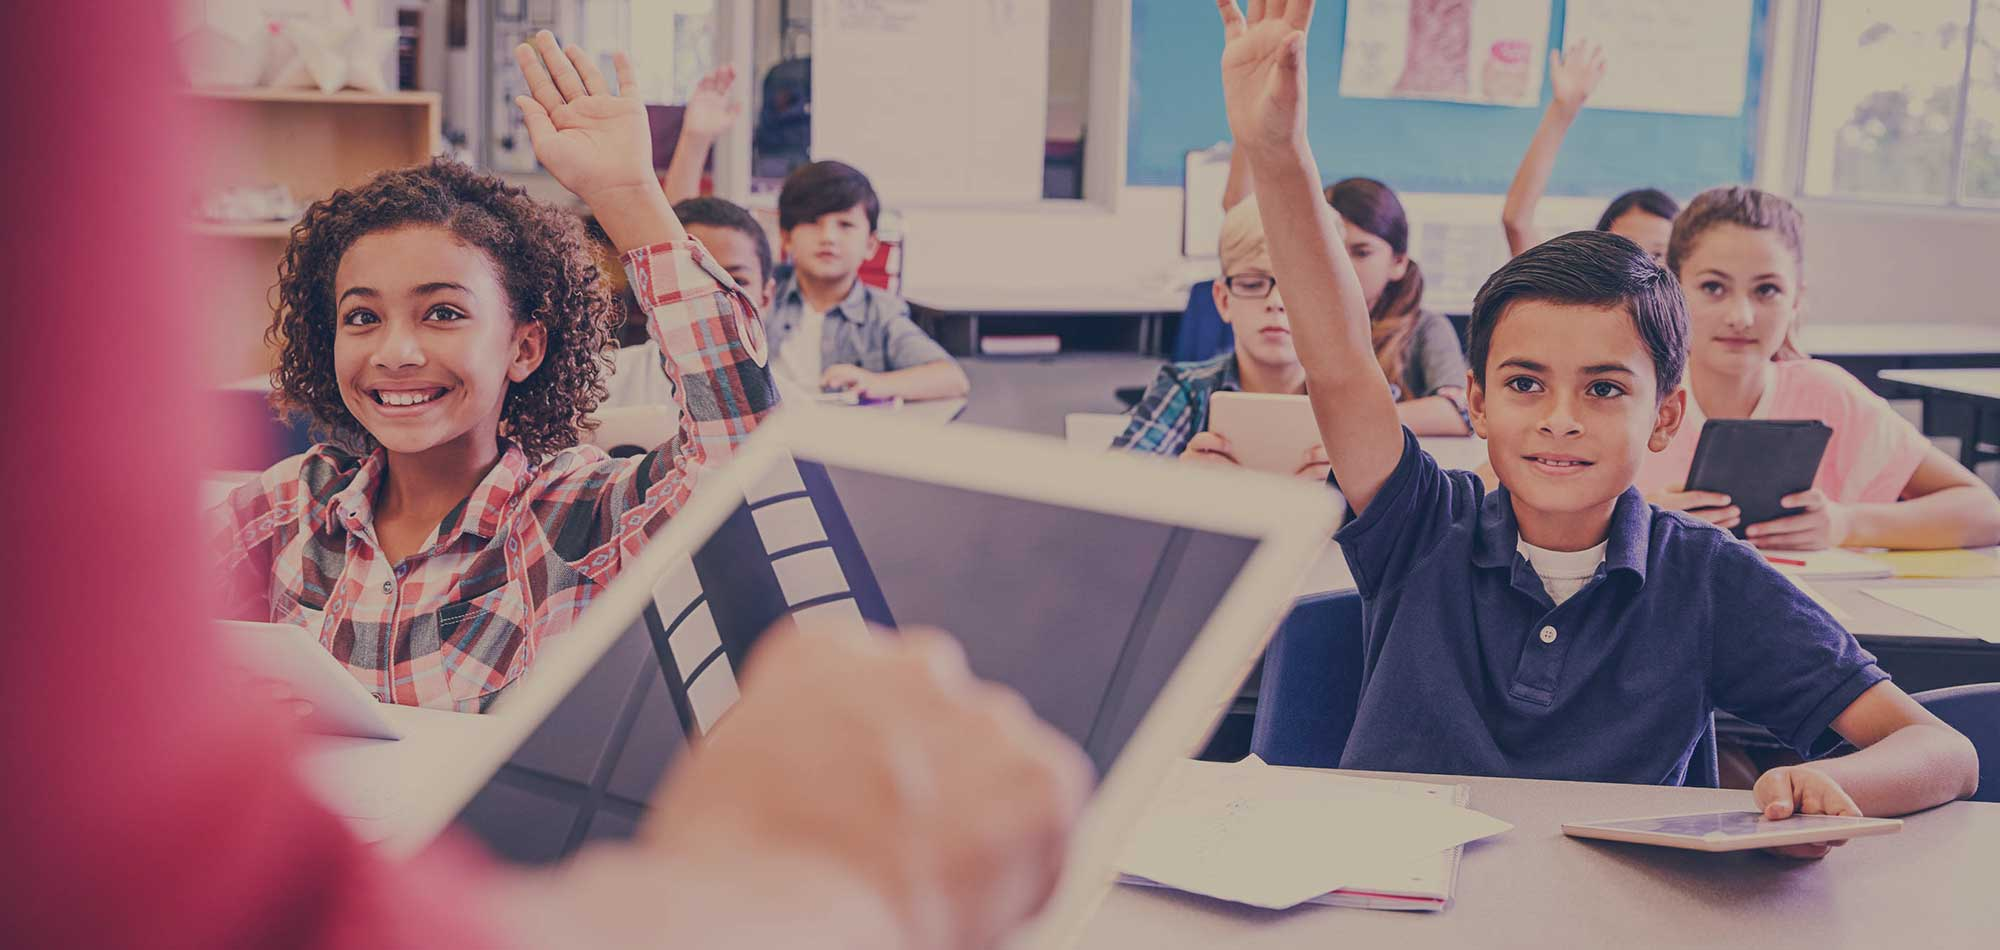 12 Things to Remember When Preparing for iPads in the Classroom